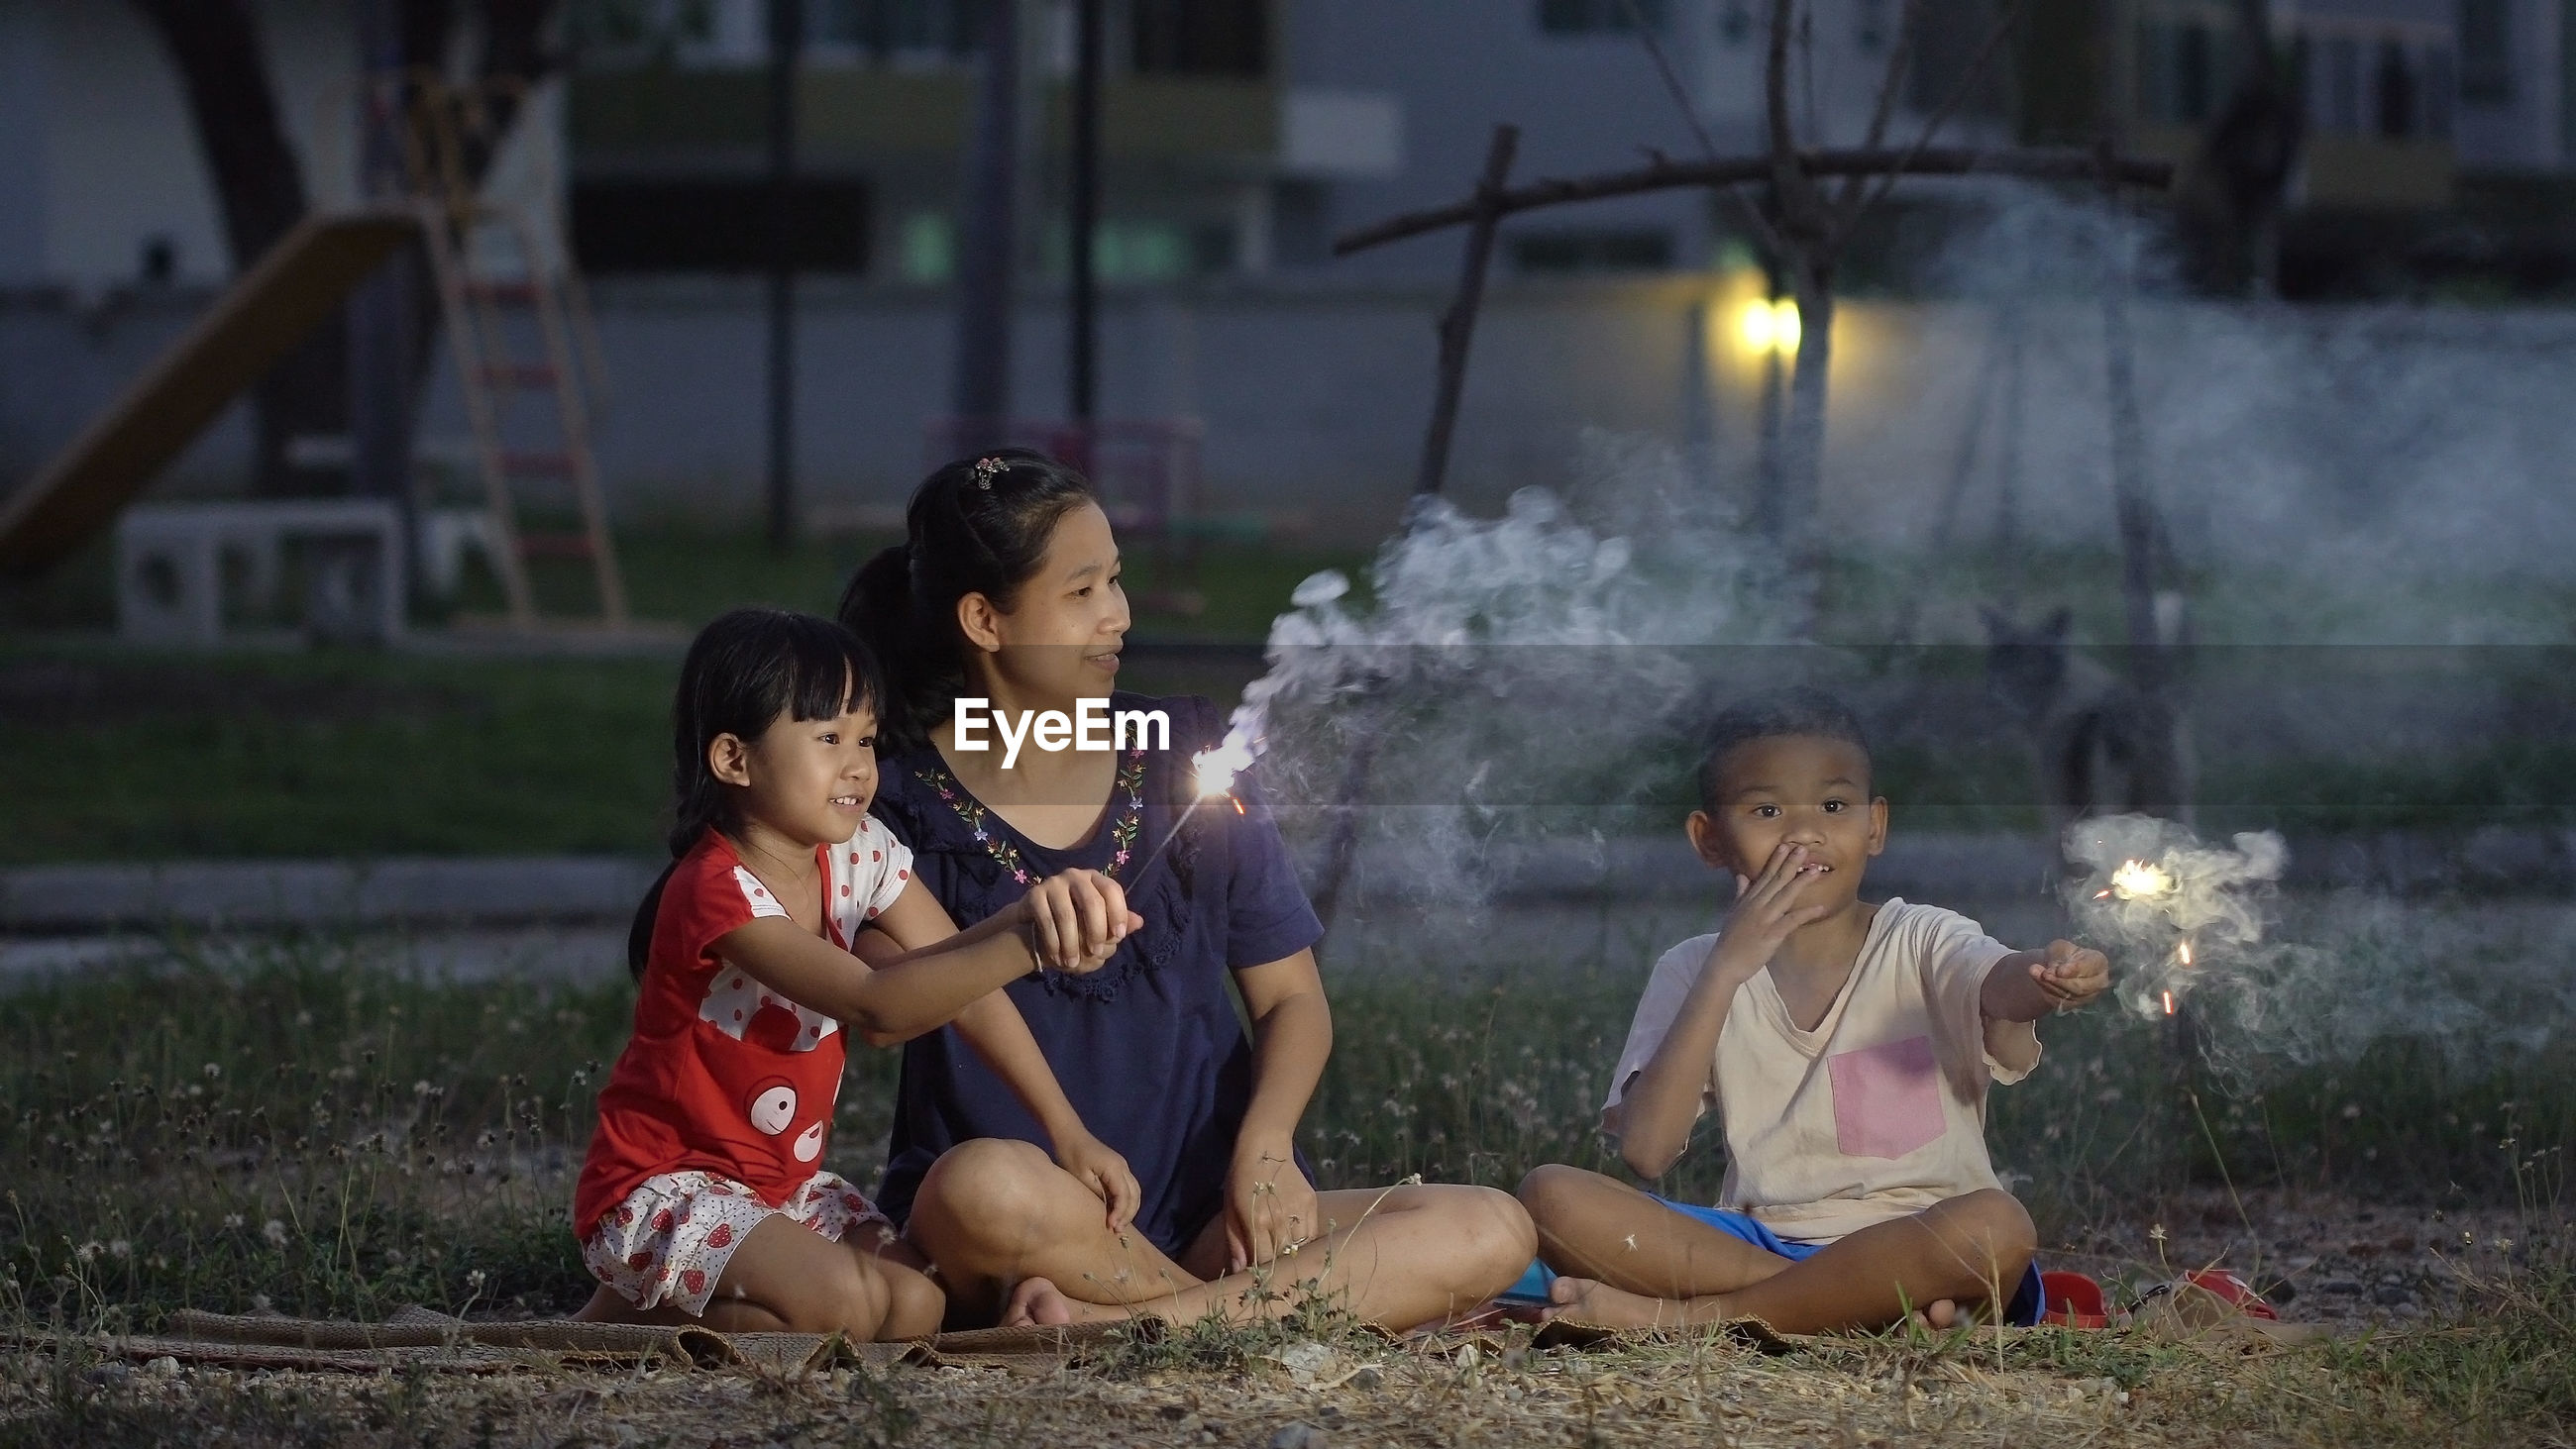 Mother sitting with son and daughter holding sparklers at night